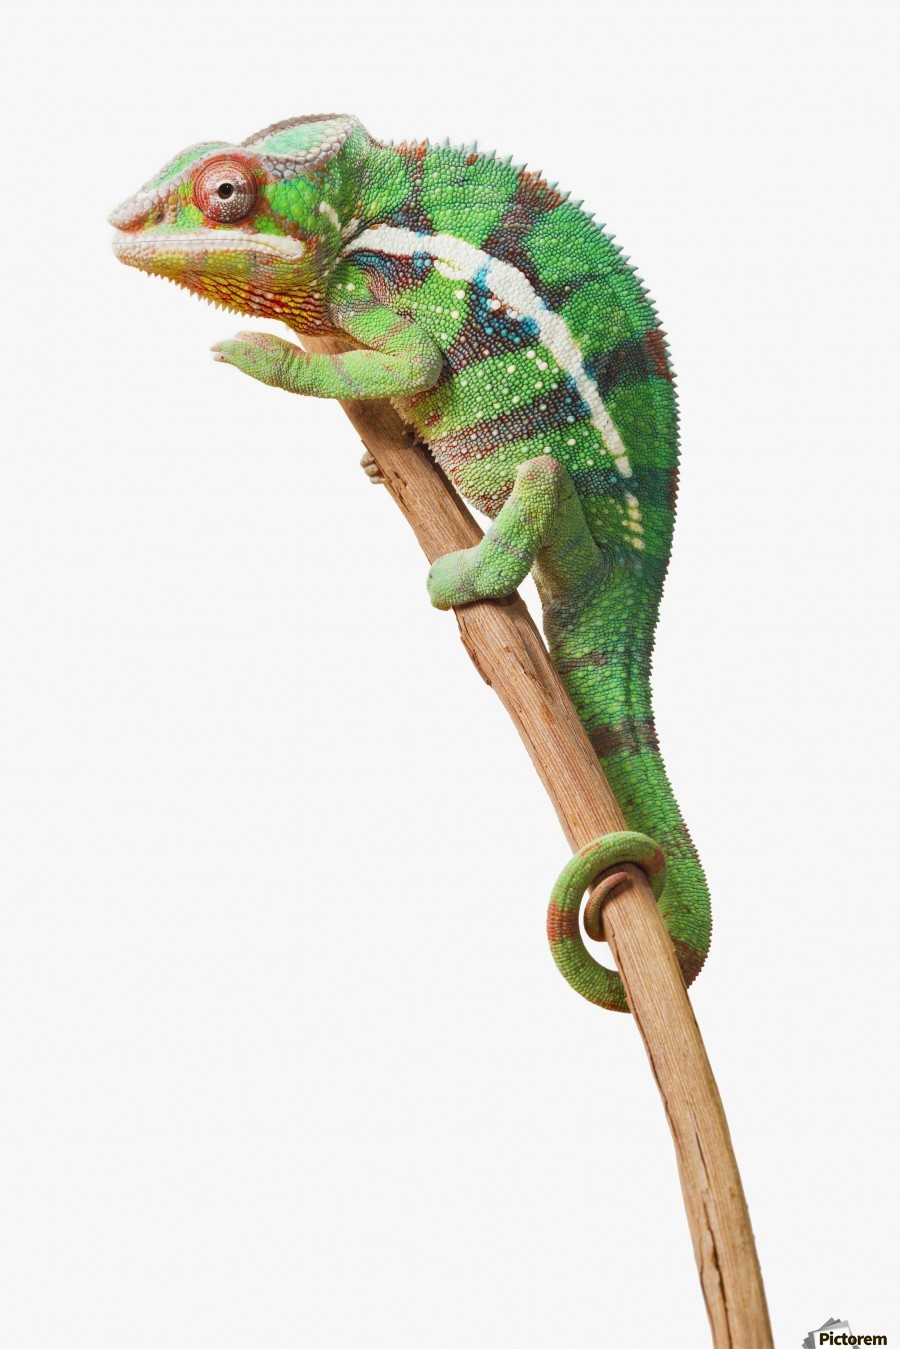 Colourful Panther Chameleon Furcifer Pardalis On A White